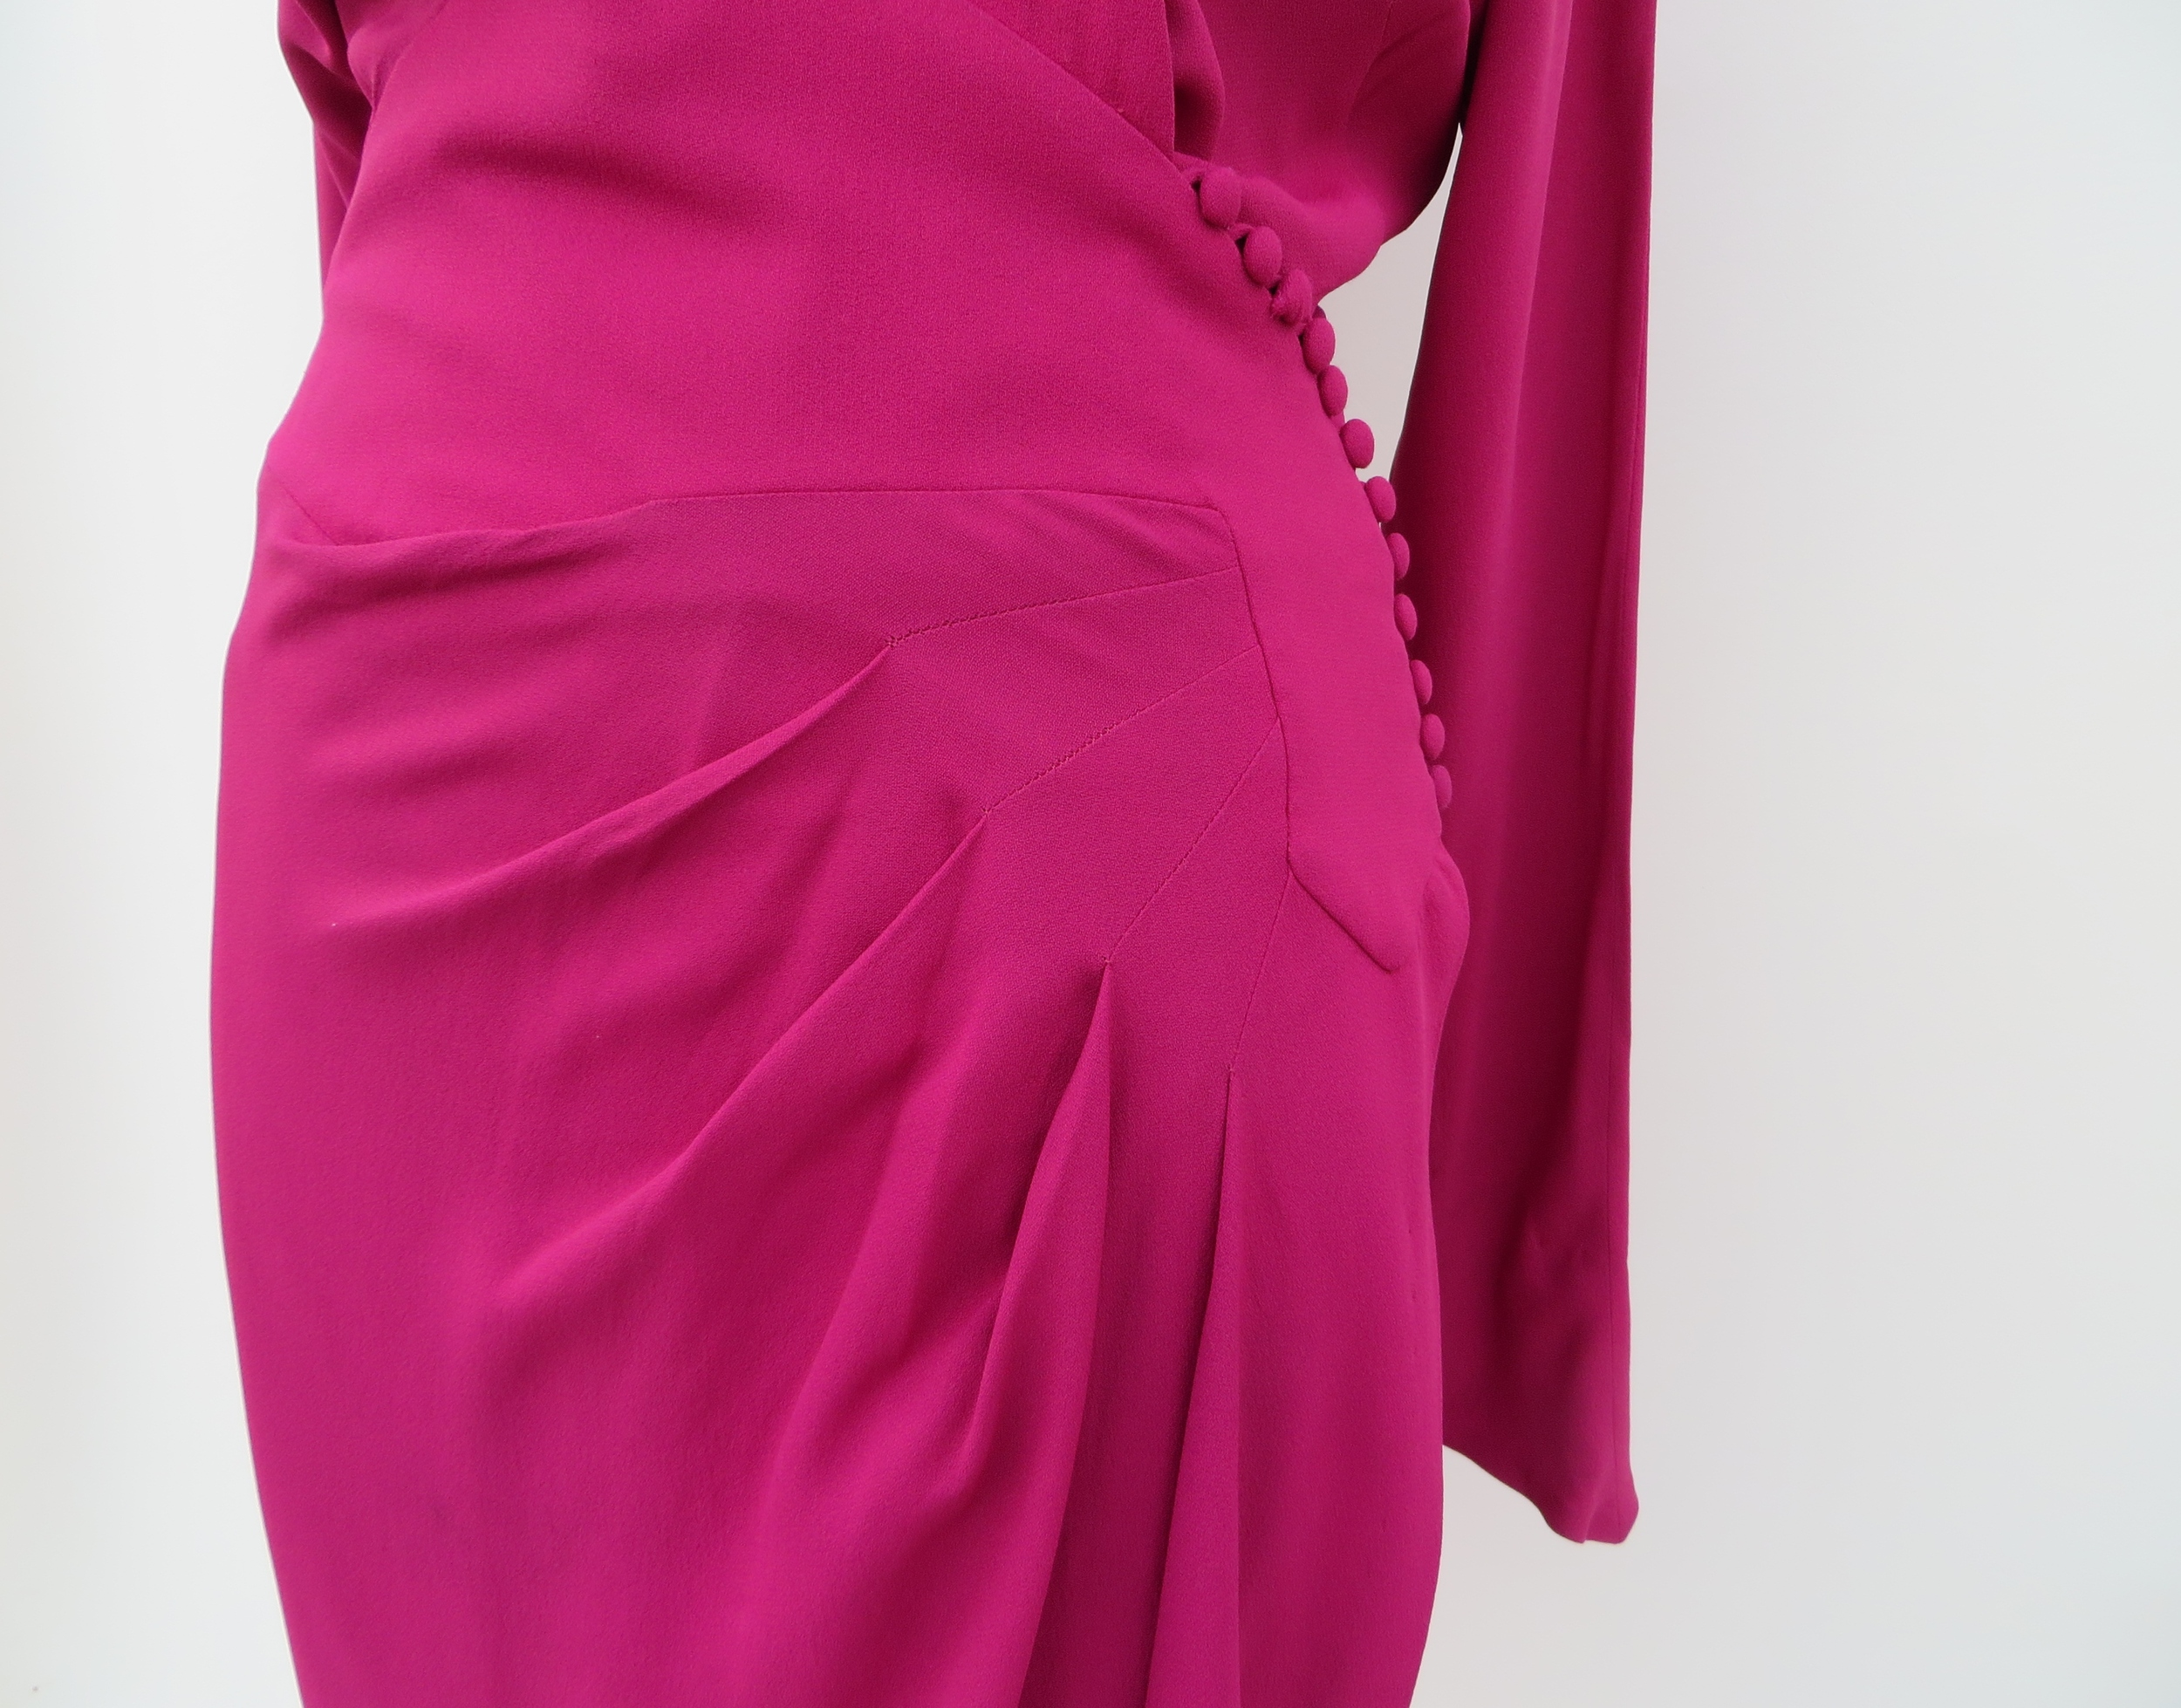 1930's crepe dress, available in the 4 Birds Vintage shop